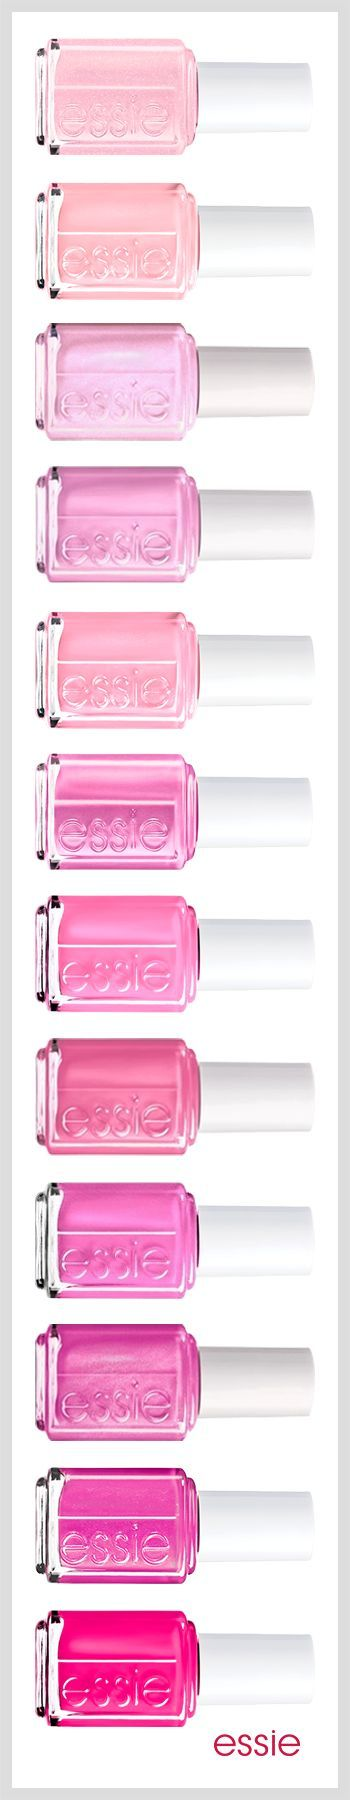 There are a couple girls here that just looove the pinks. Pretty pink nail colors. Essie.